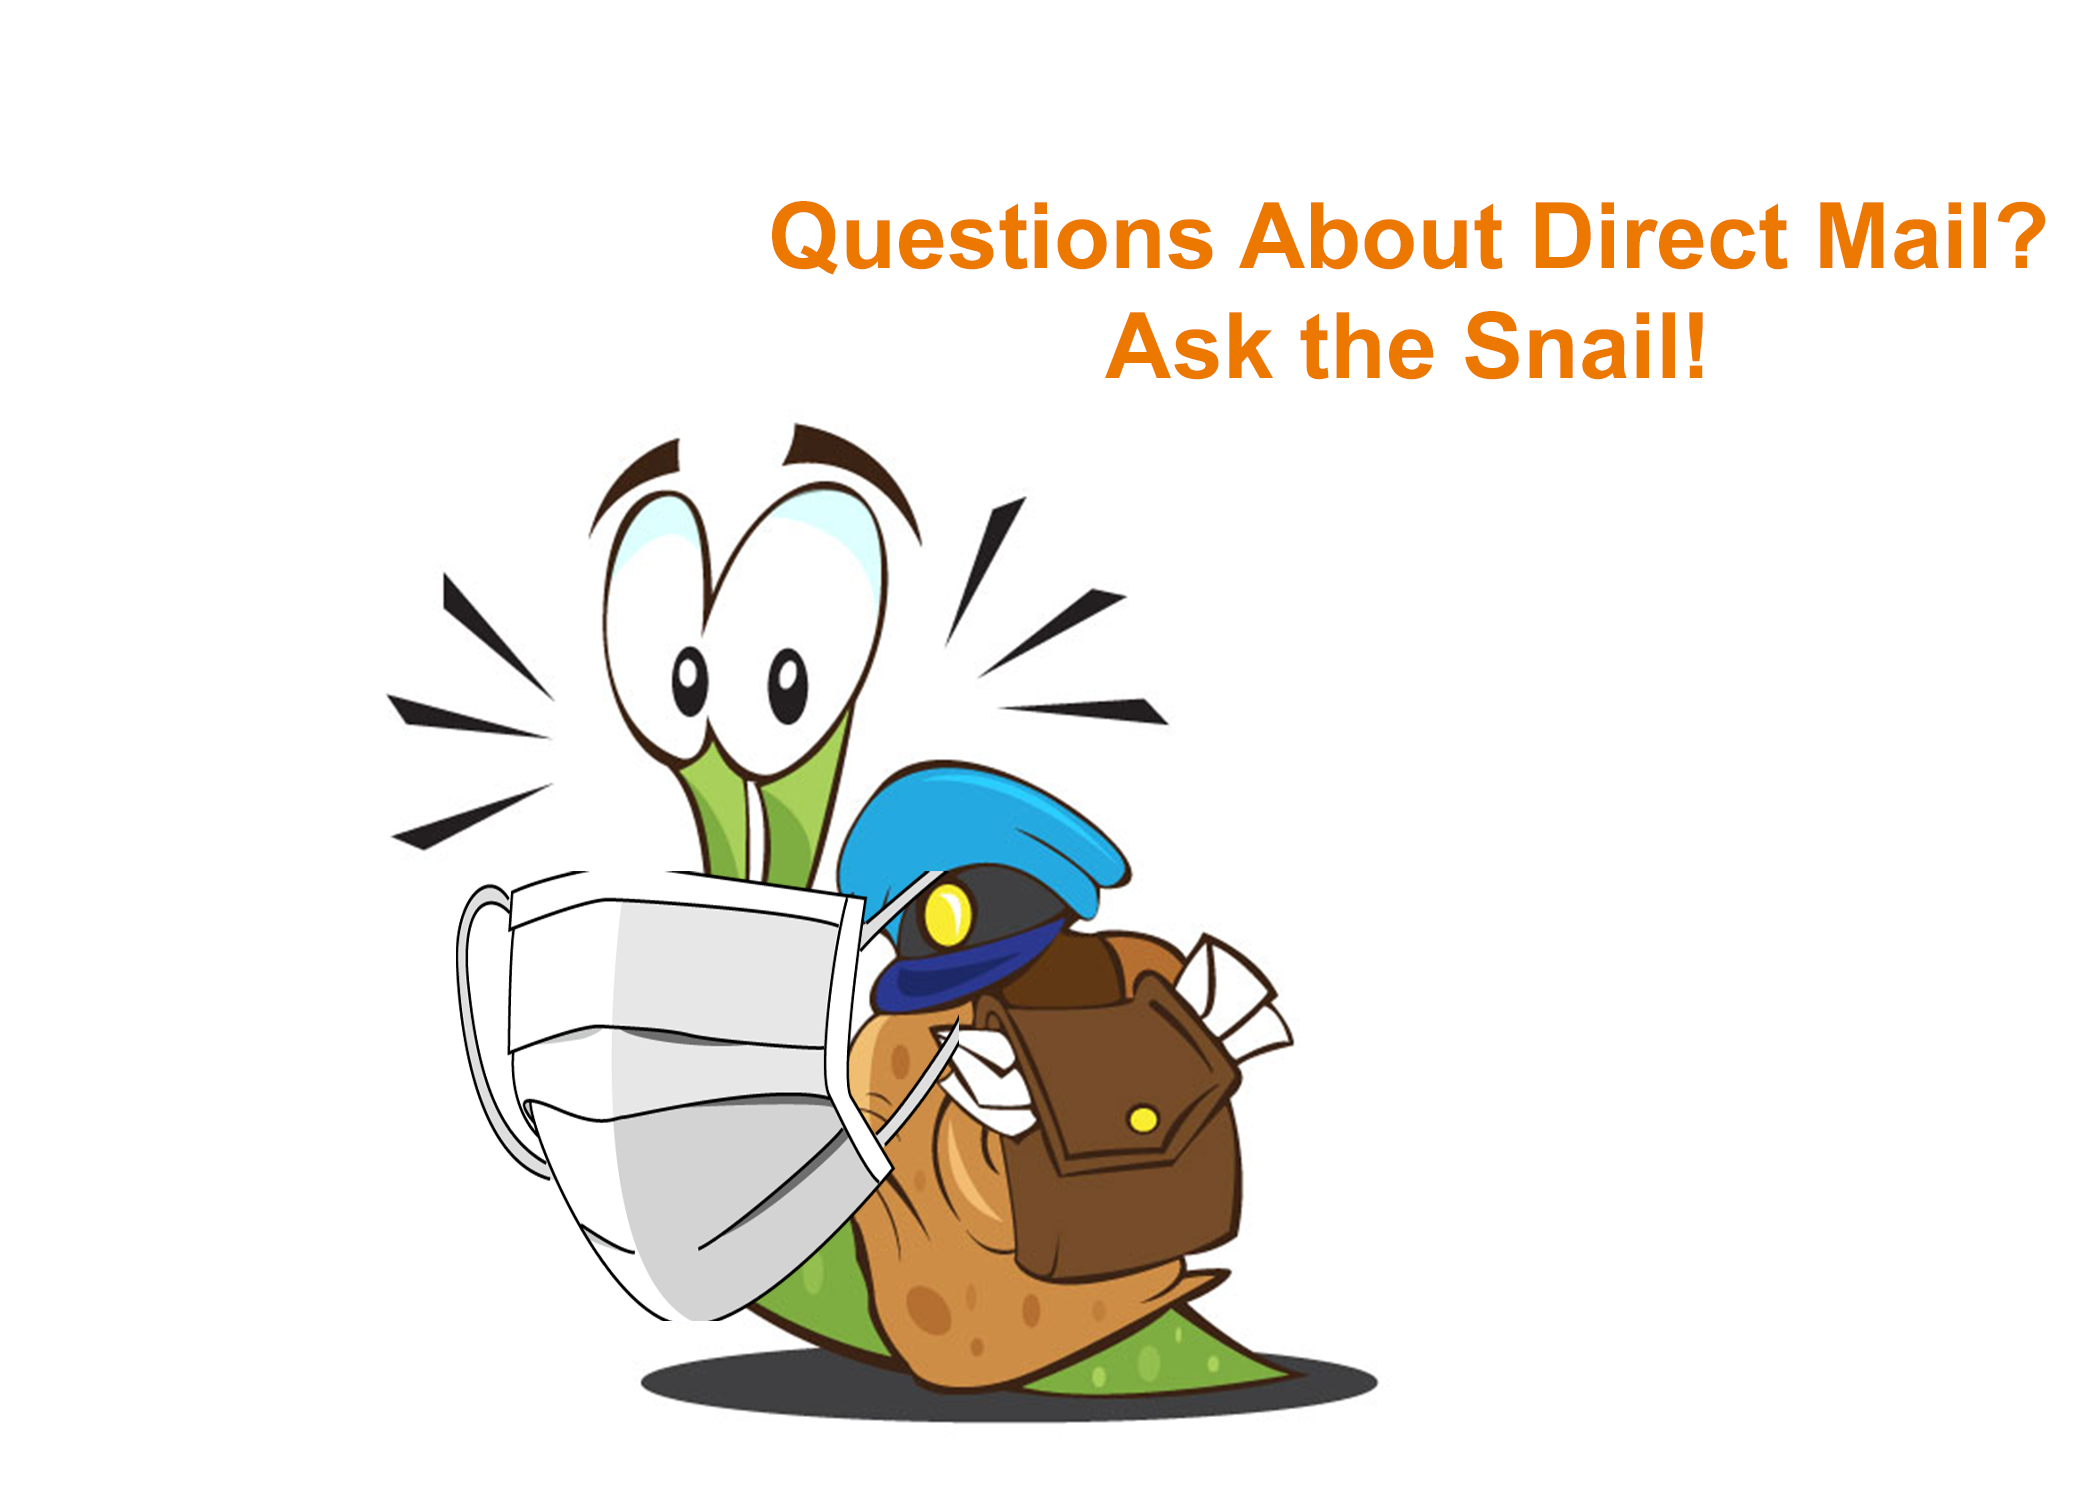 Ask the Snail! Promotional Code Follow Up